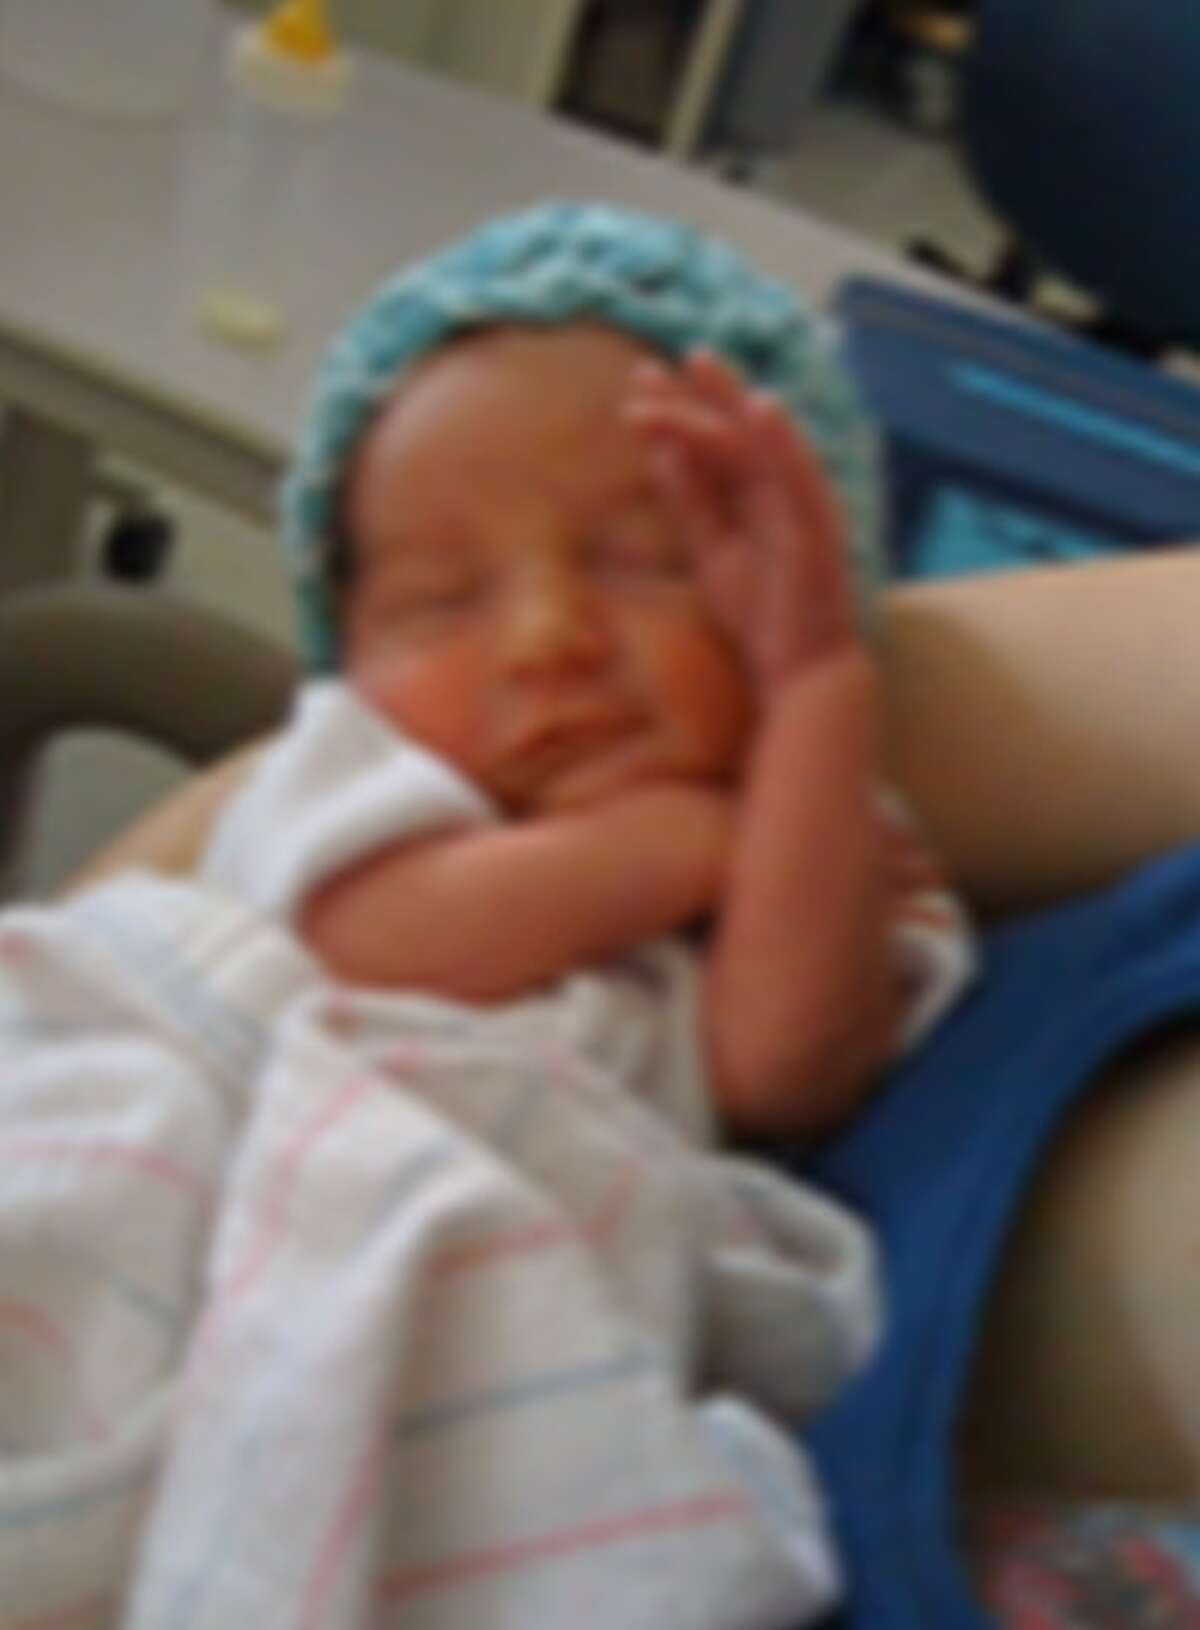 Photos of unidentified newborn babies as part of an active investigation.